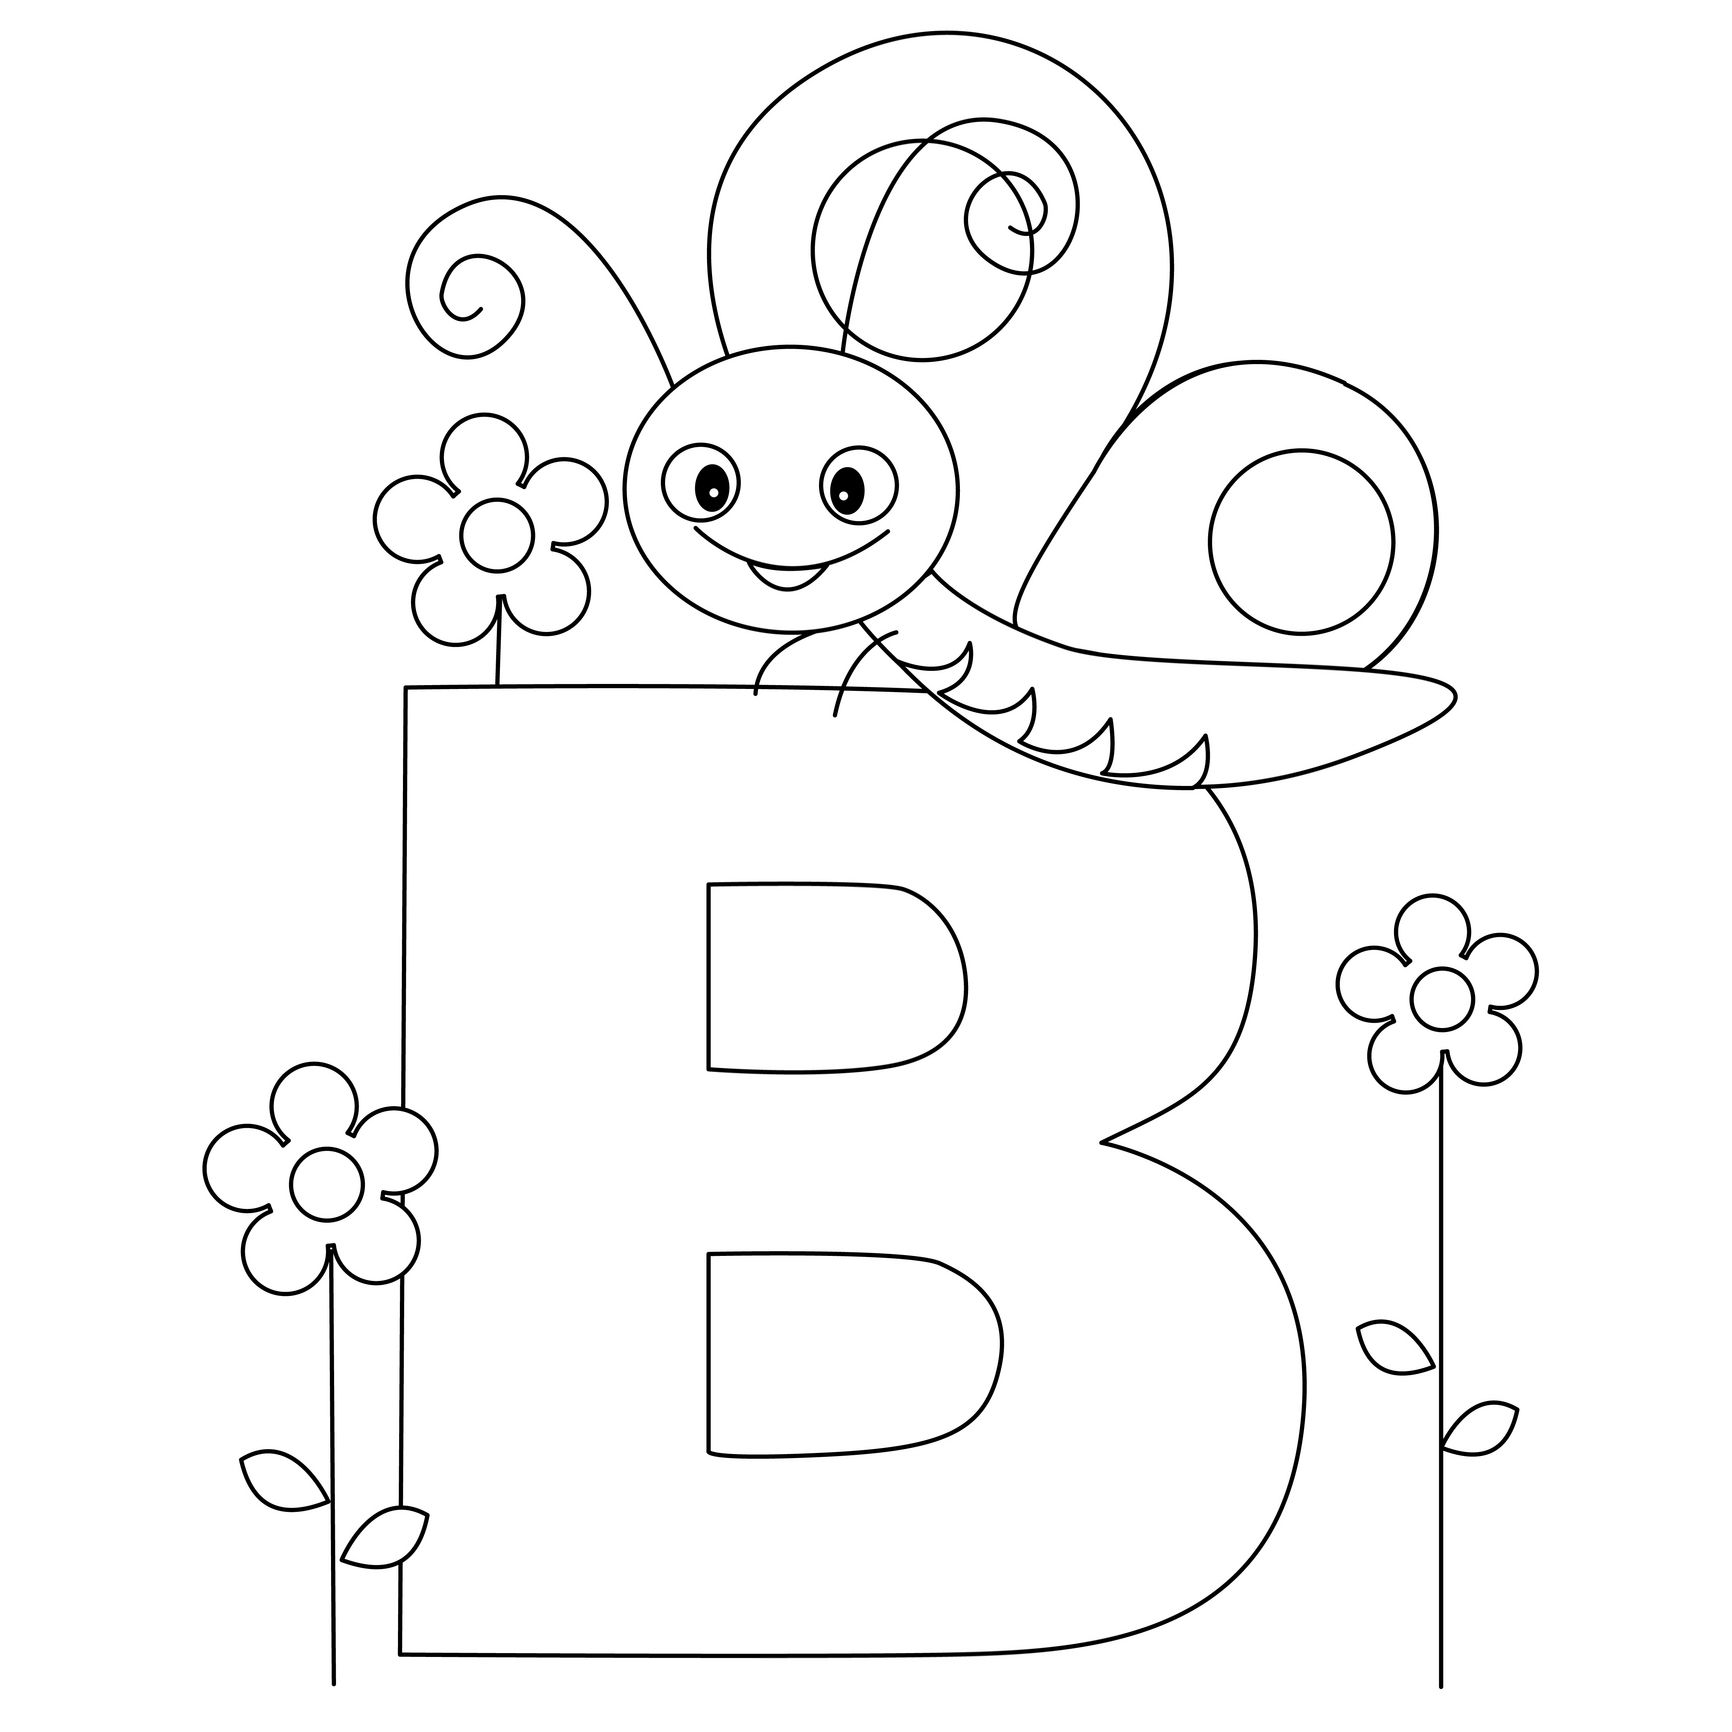 Letter B Coloring Page Alphabet Coloring Pages Alphabet Coloring